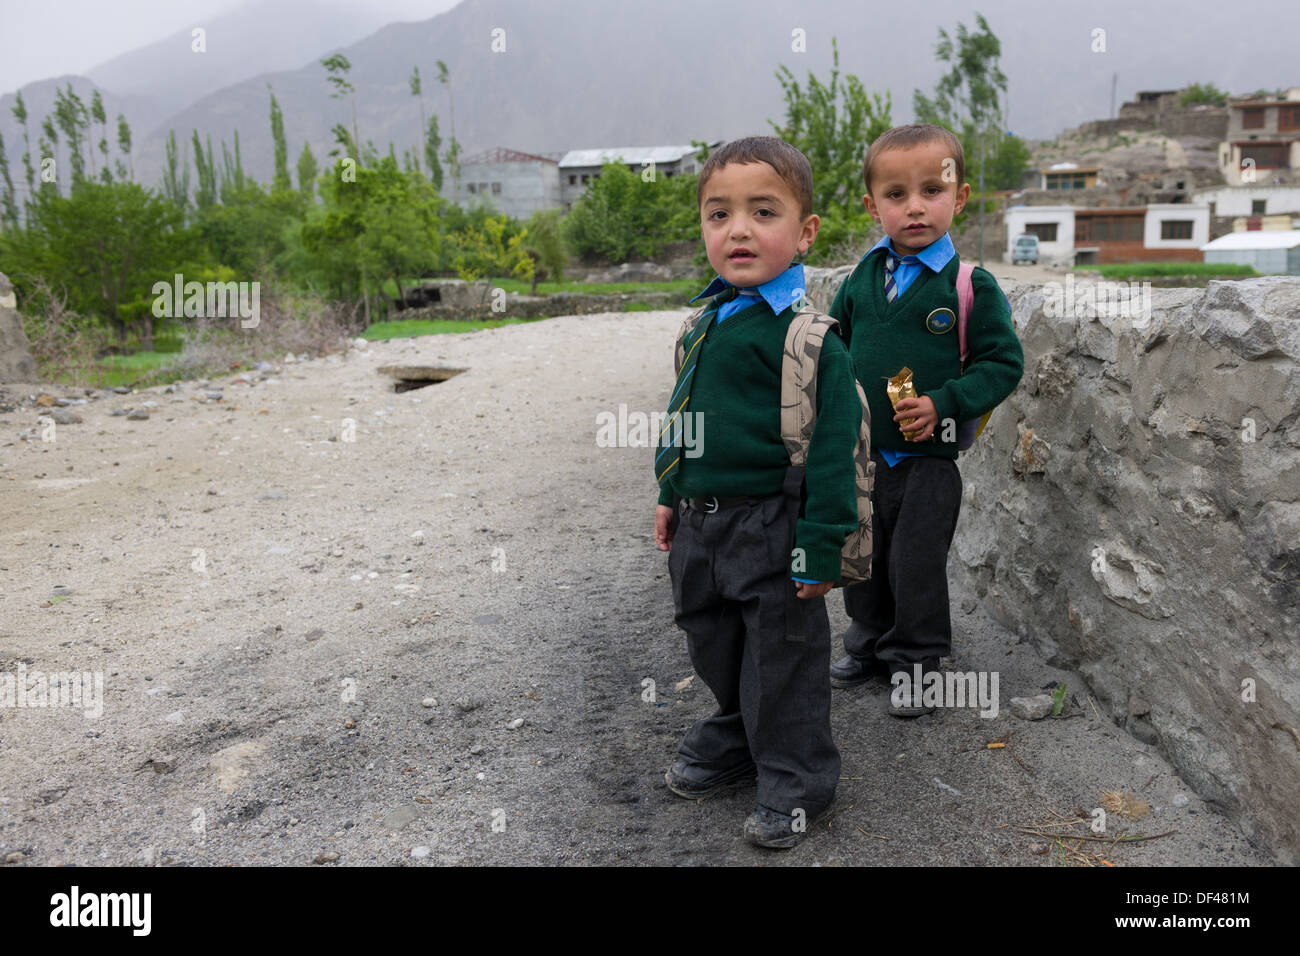 Primary school boys outside of the village of Chumarkhand, near Karimabad, Hunza Valley, Gilgit-Baltistan, Pakistan - Stock Image